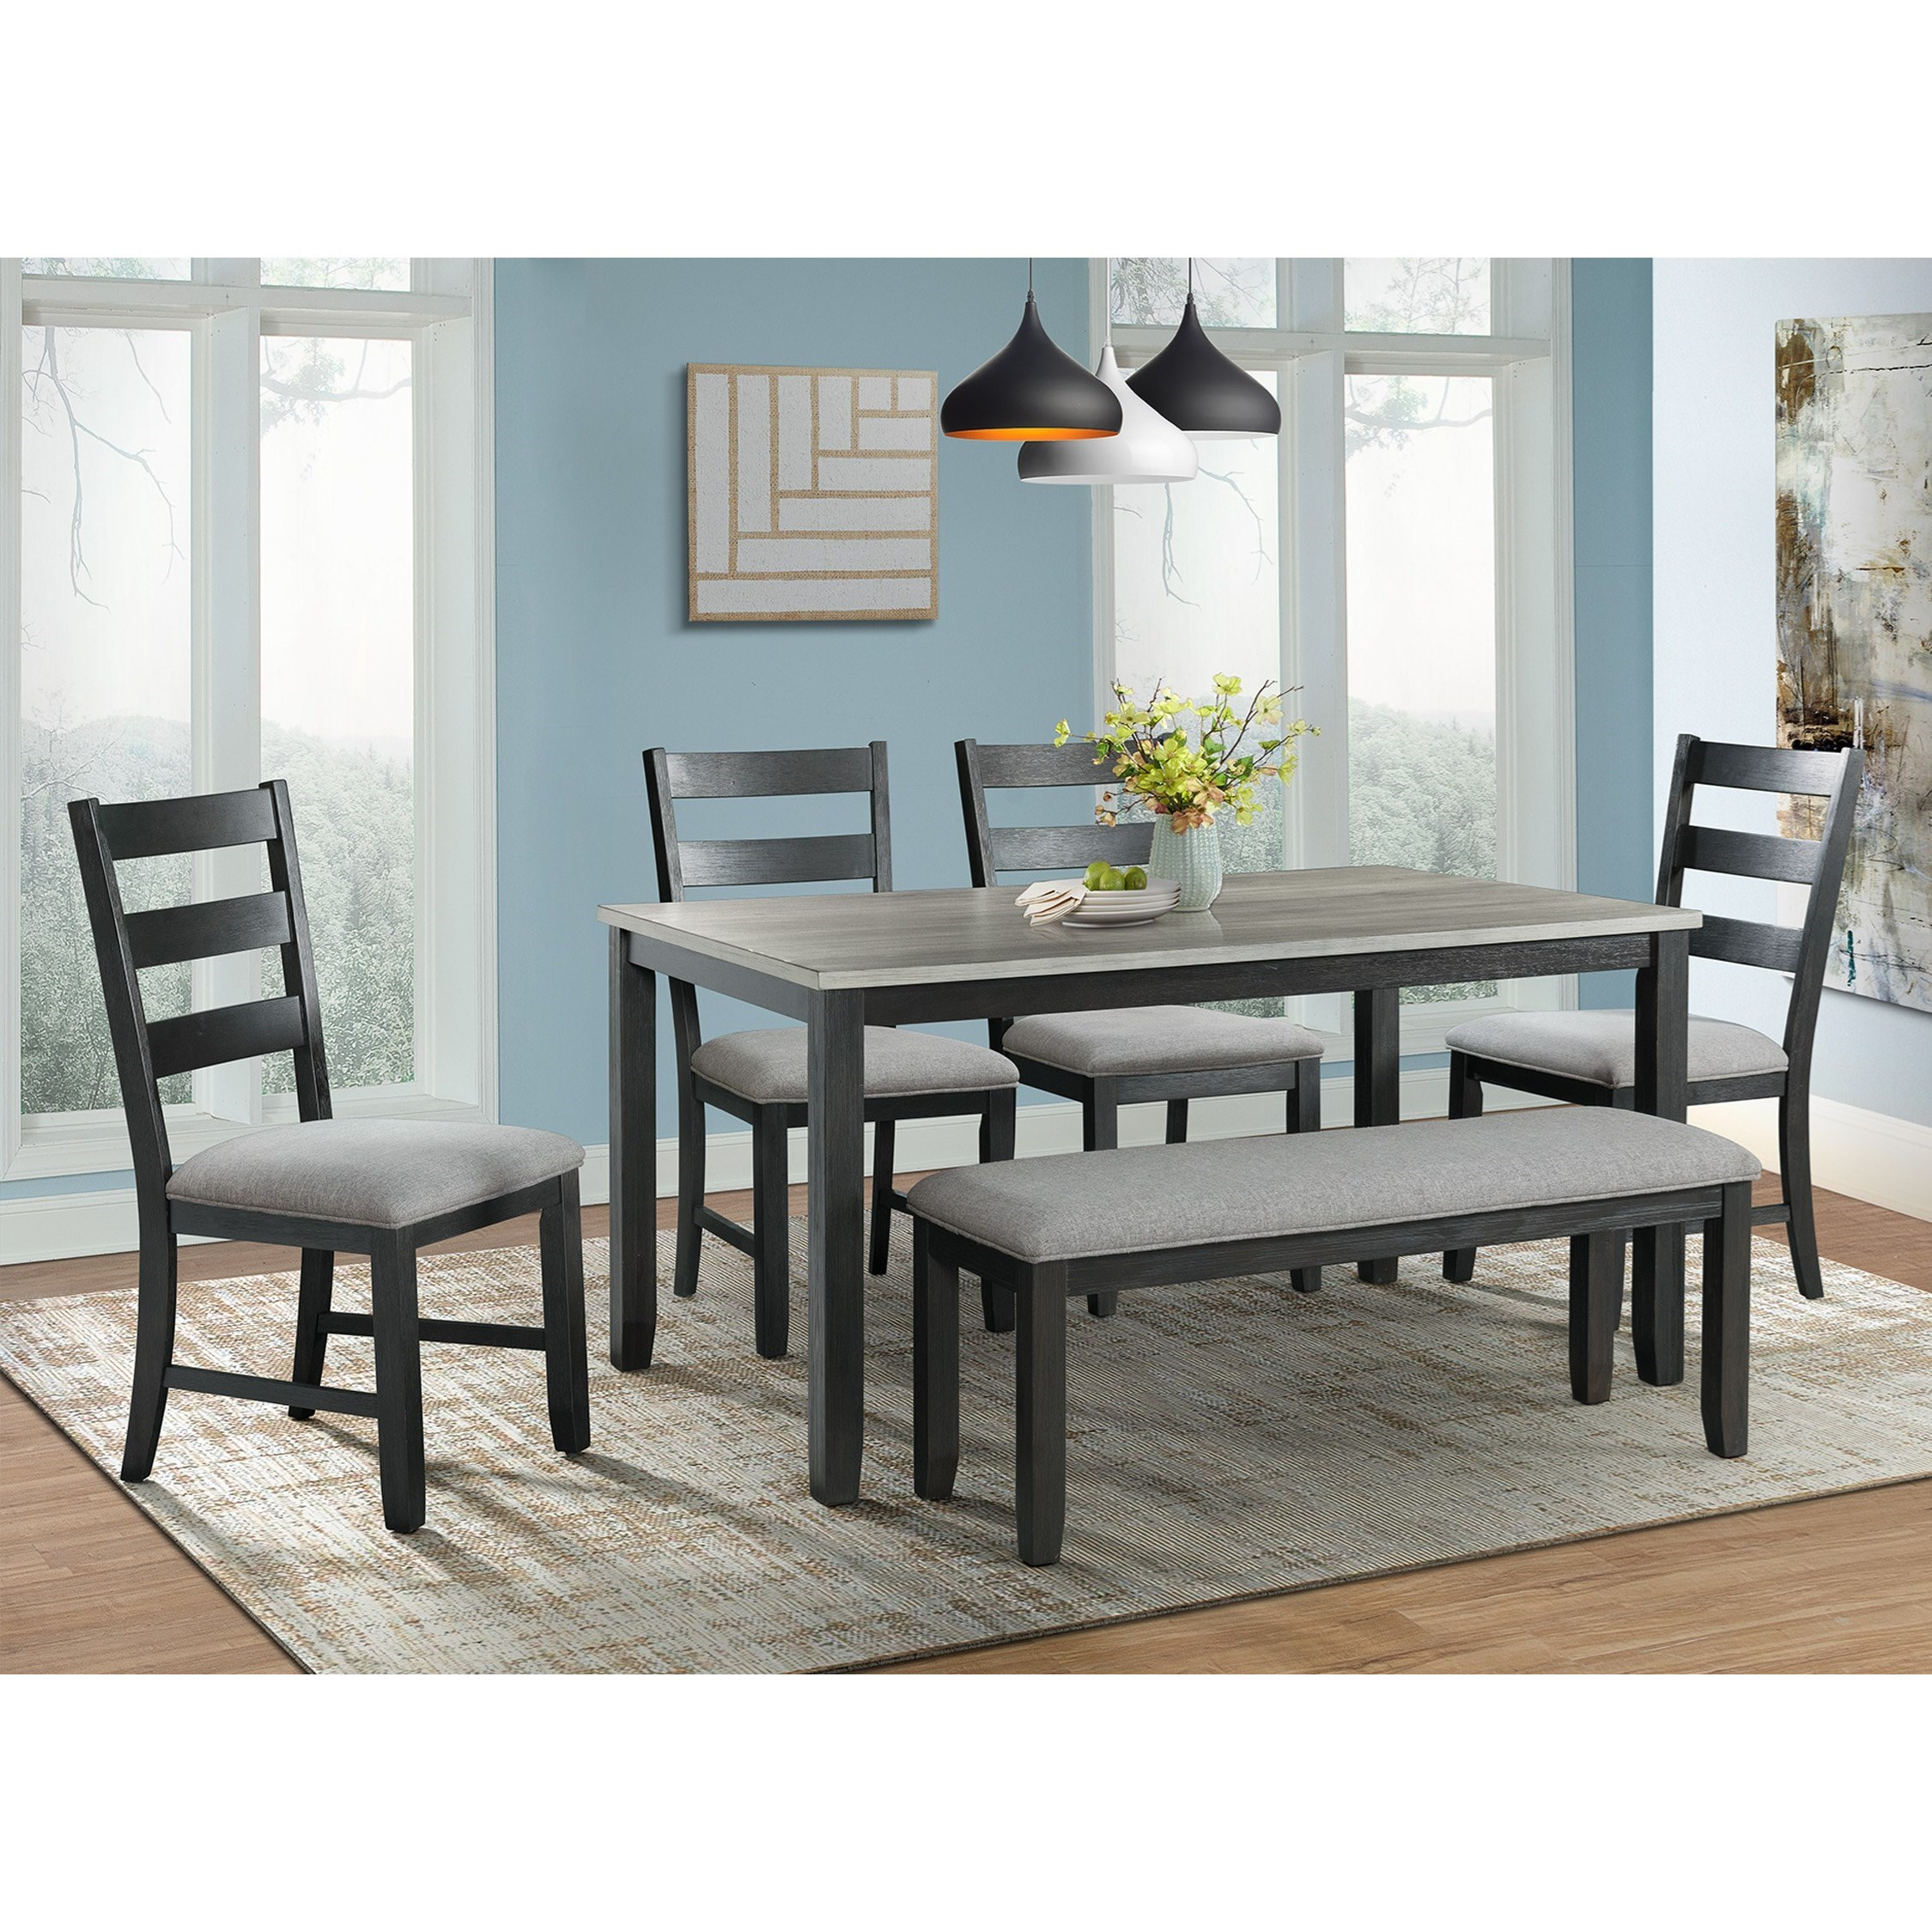 Elements Martin Rustic Dining Table Set With Bench Royal Furniture Table Chair Set With Bench